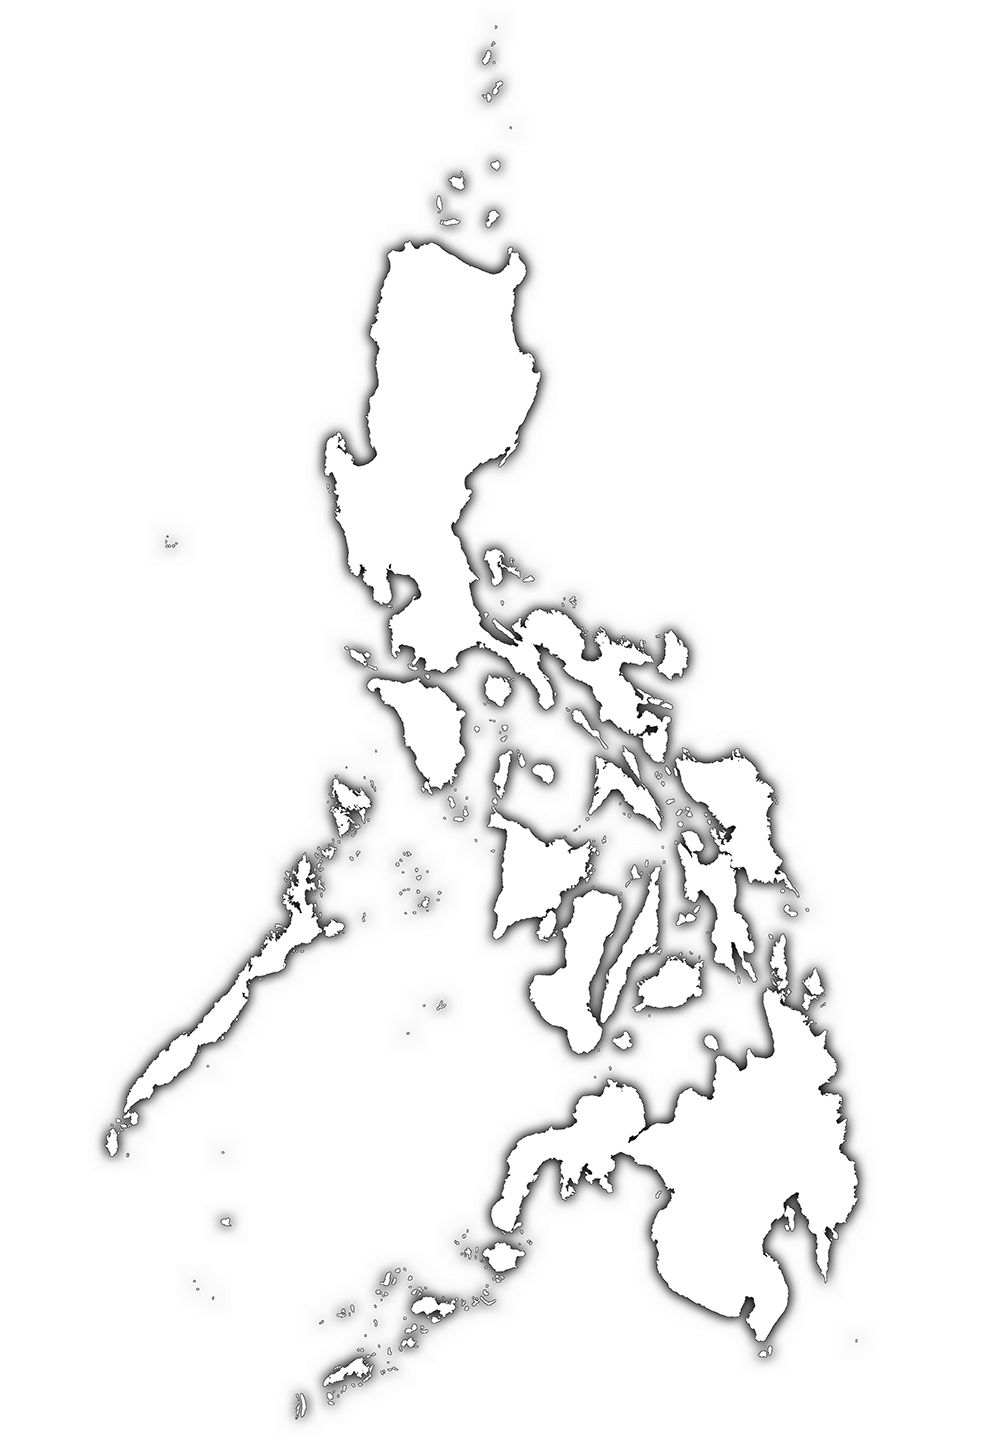 Philippines Map Black And White.Map Of The Philippines Black And White Png Png Image